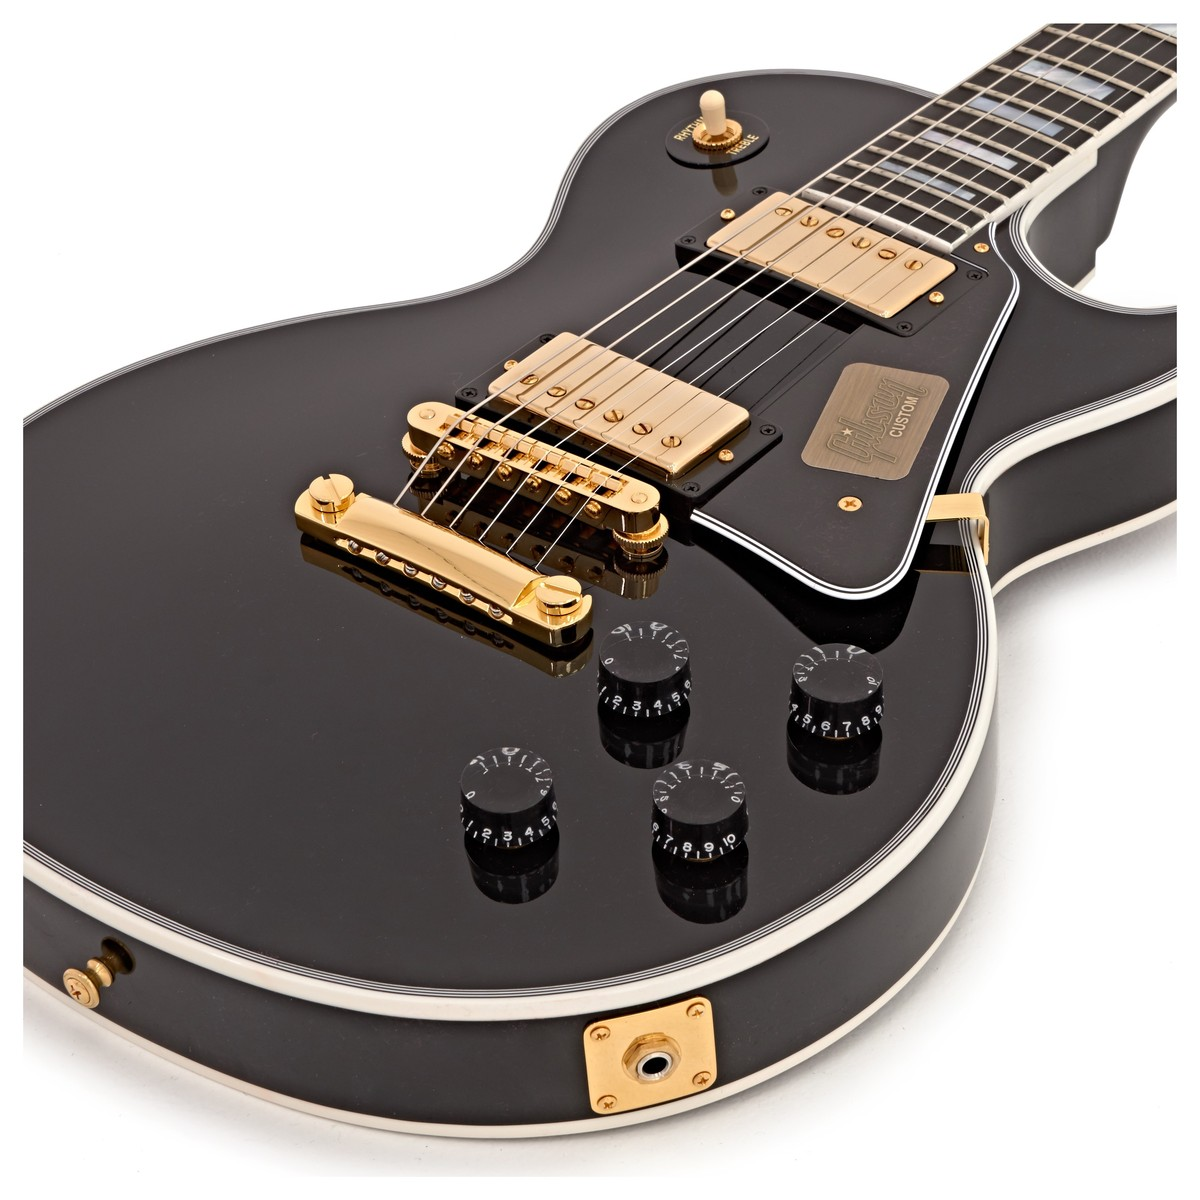 Dating gibson custom shop guitars